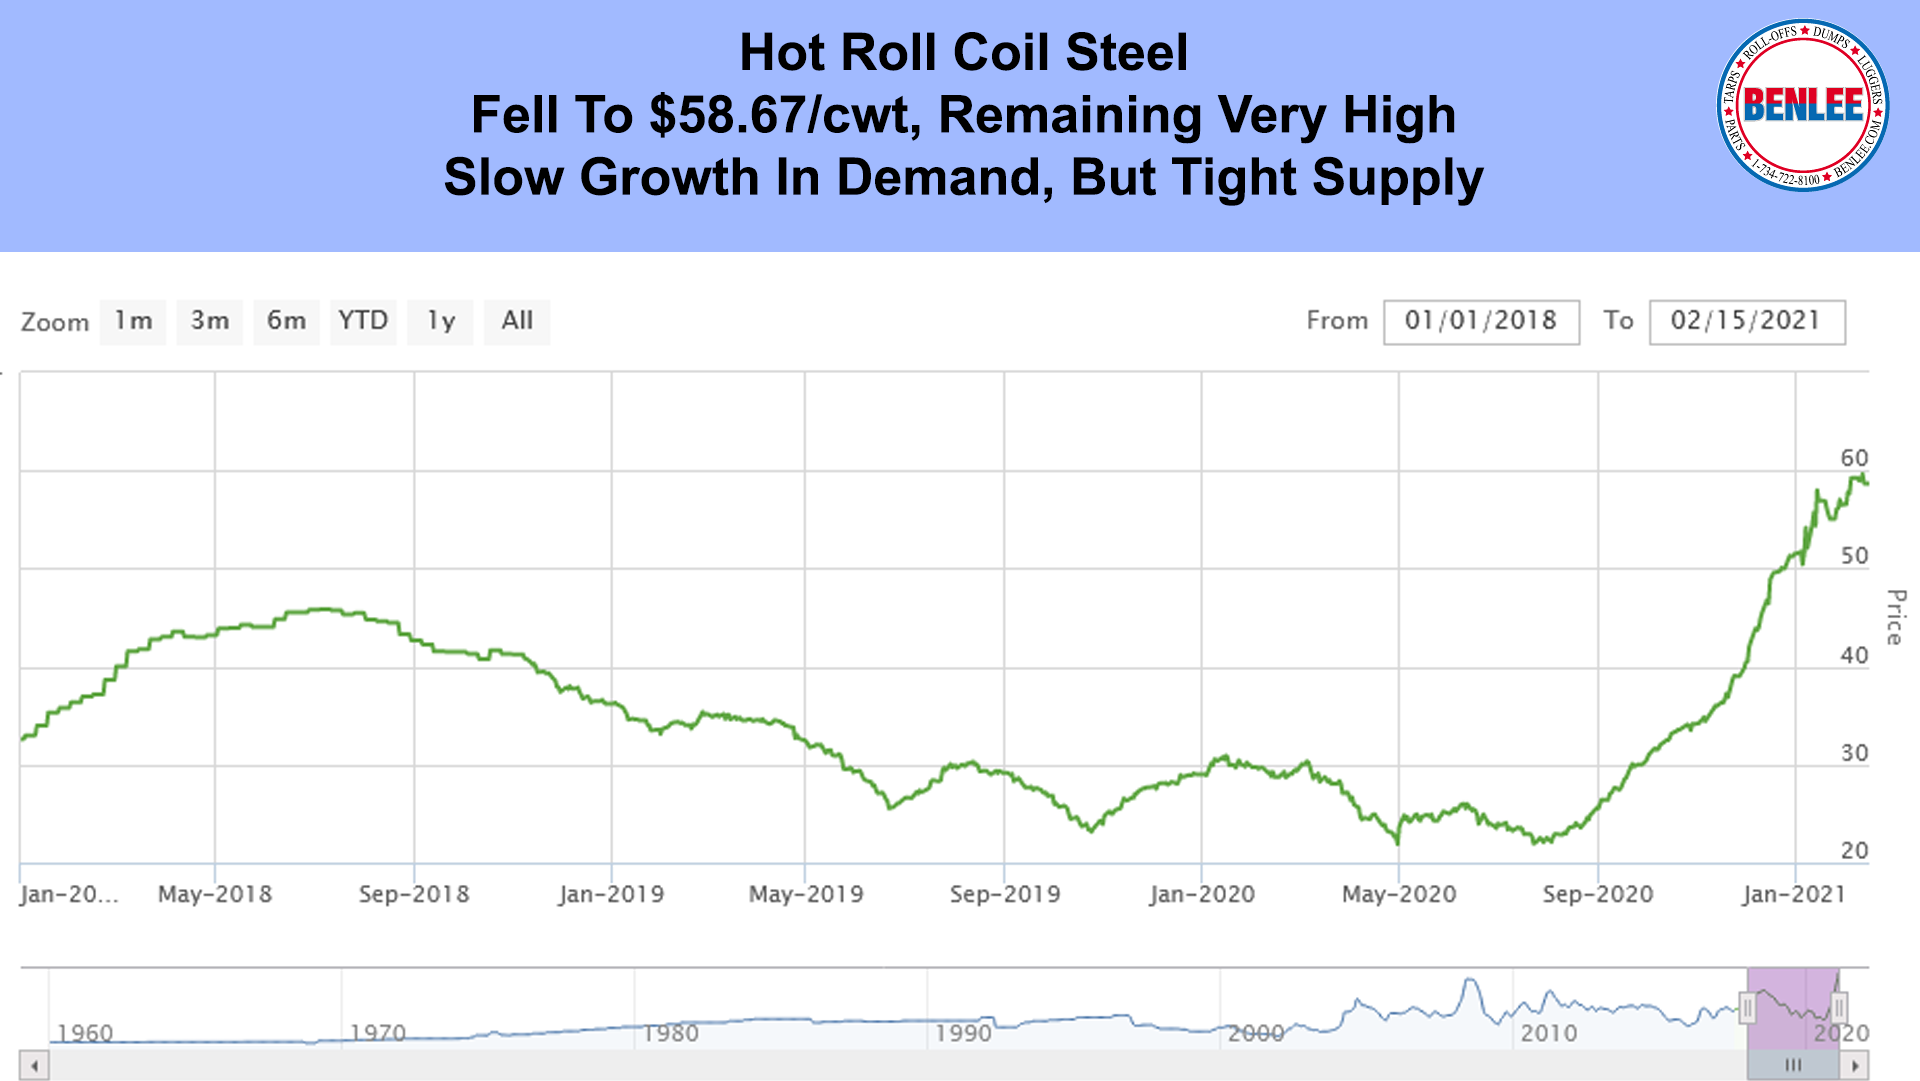 Hot Roll Coil Steel